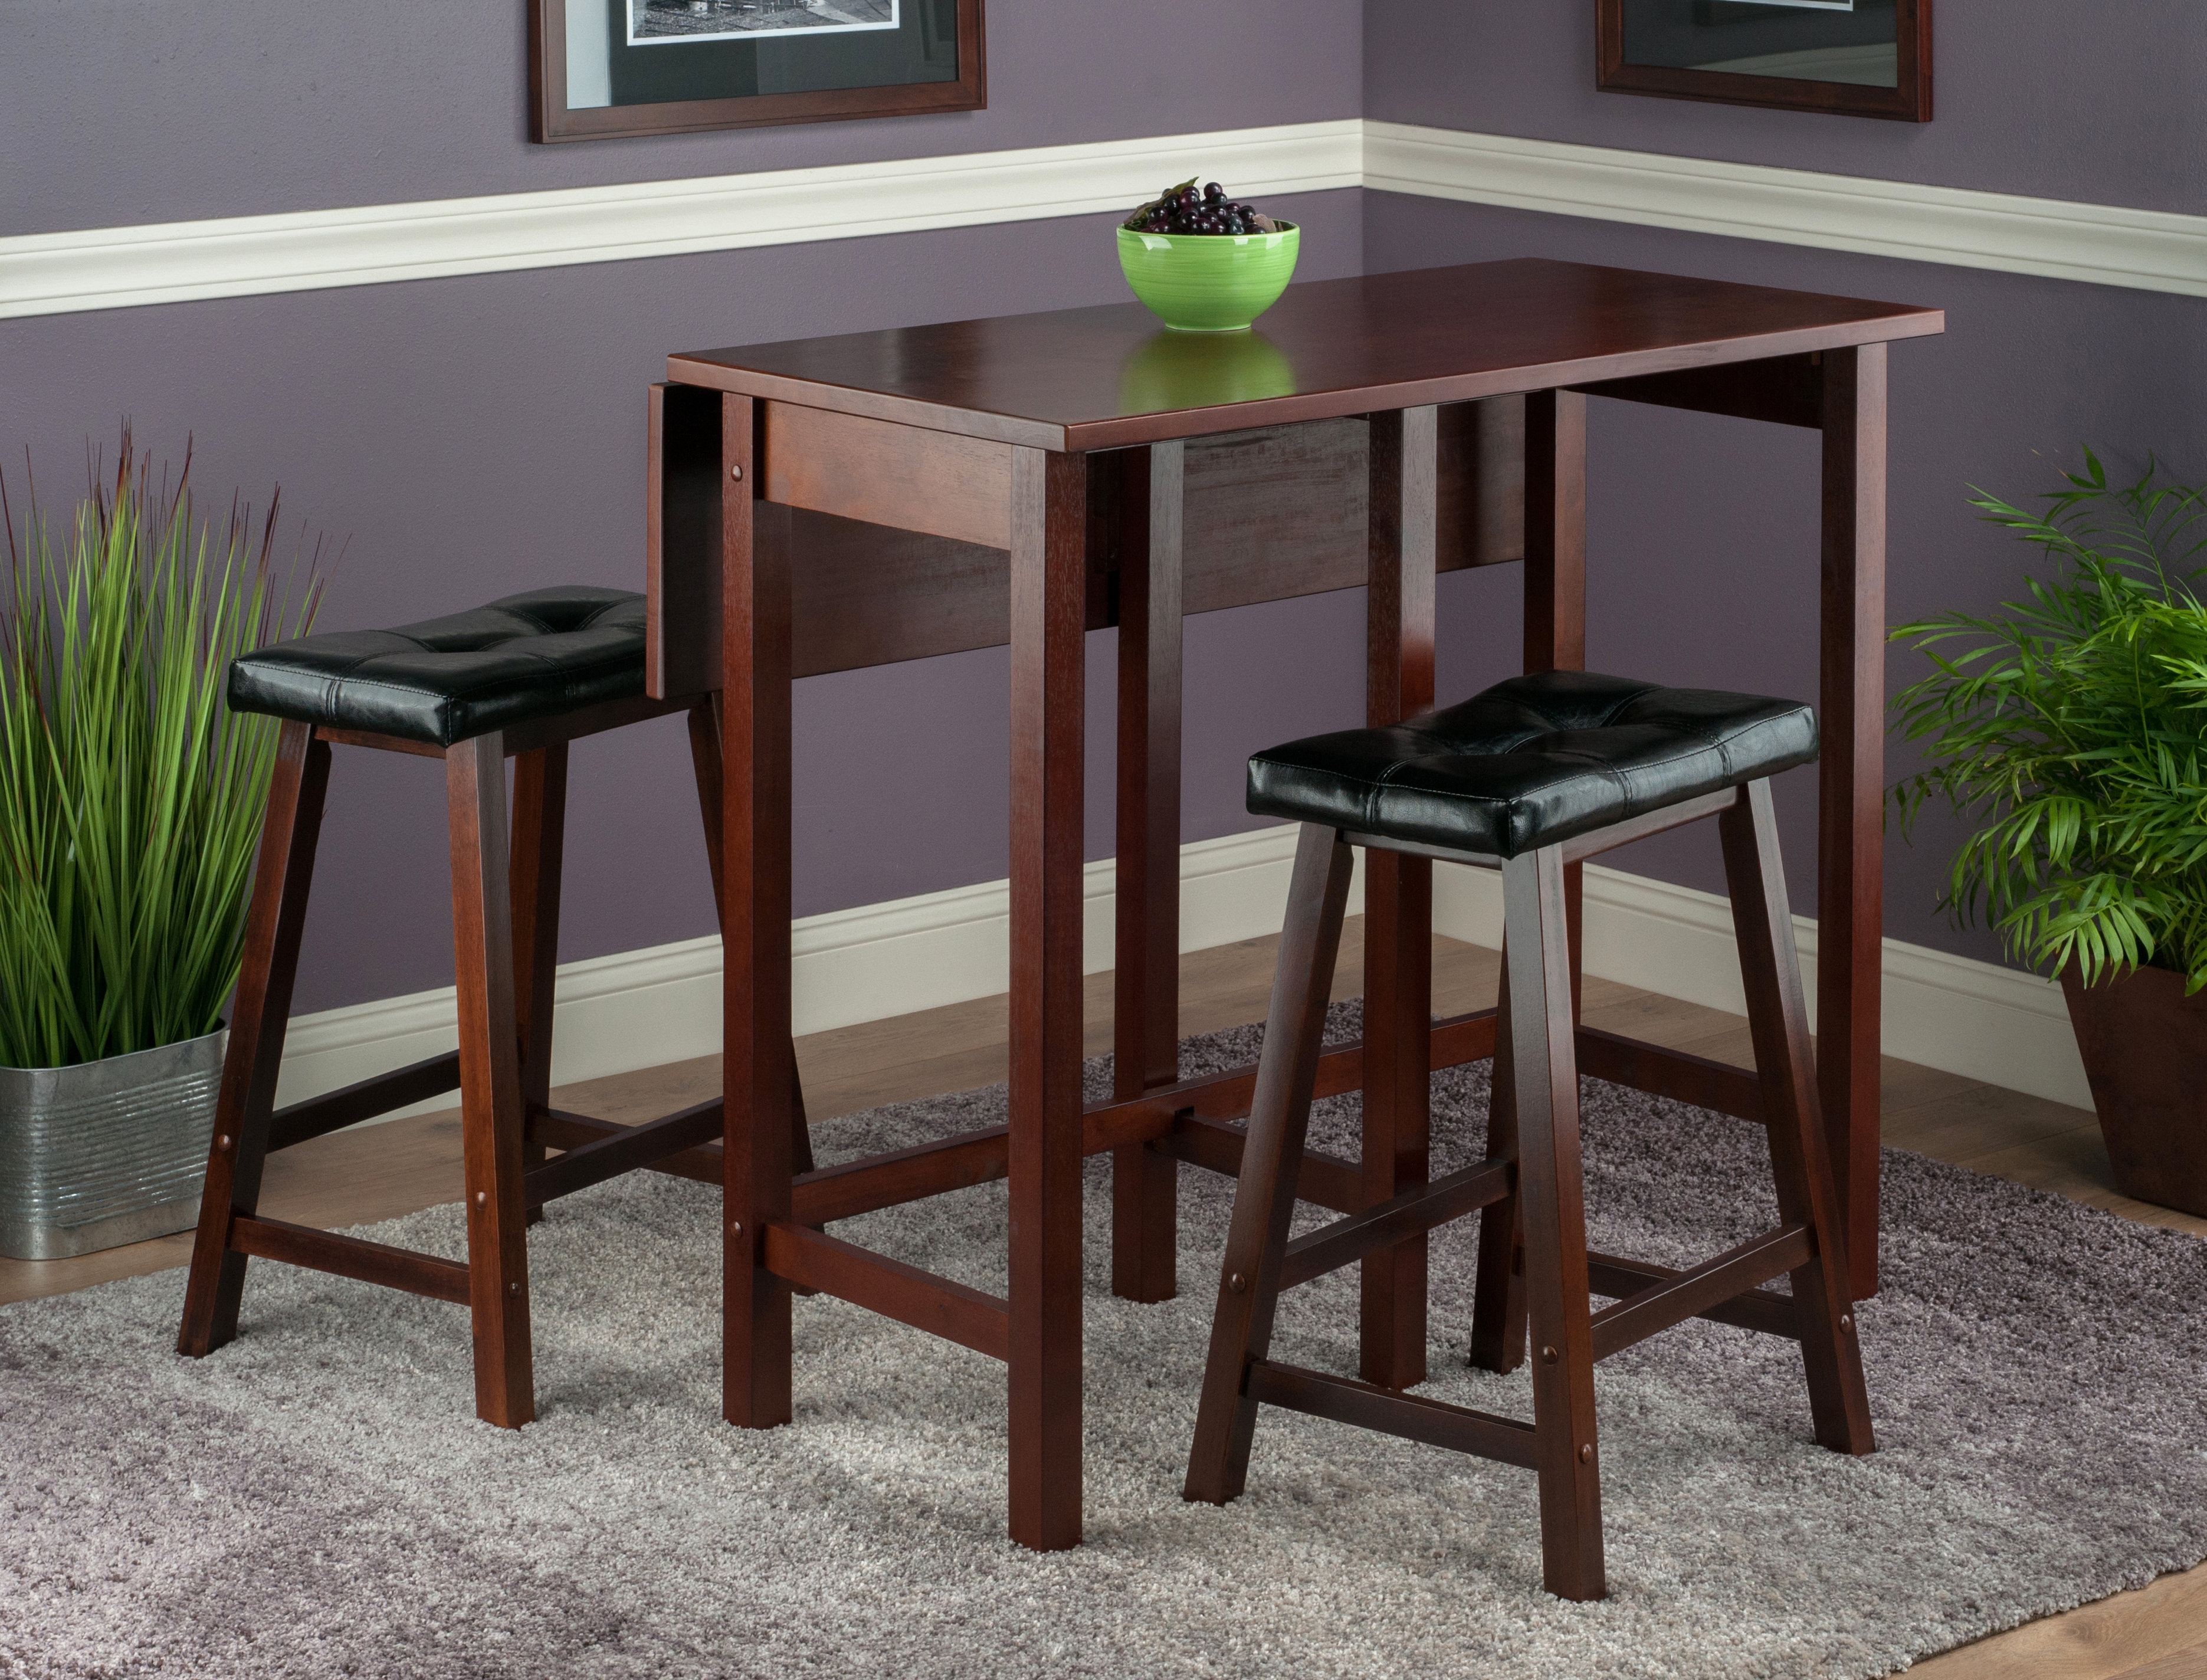 Bettencourt 3 Piece Counter Height Dining Set In Most Popular Bettencourt 3 Piece Counter Height Solid Wood Dining Sets (View 2 of 20)